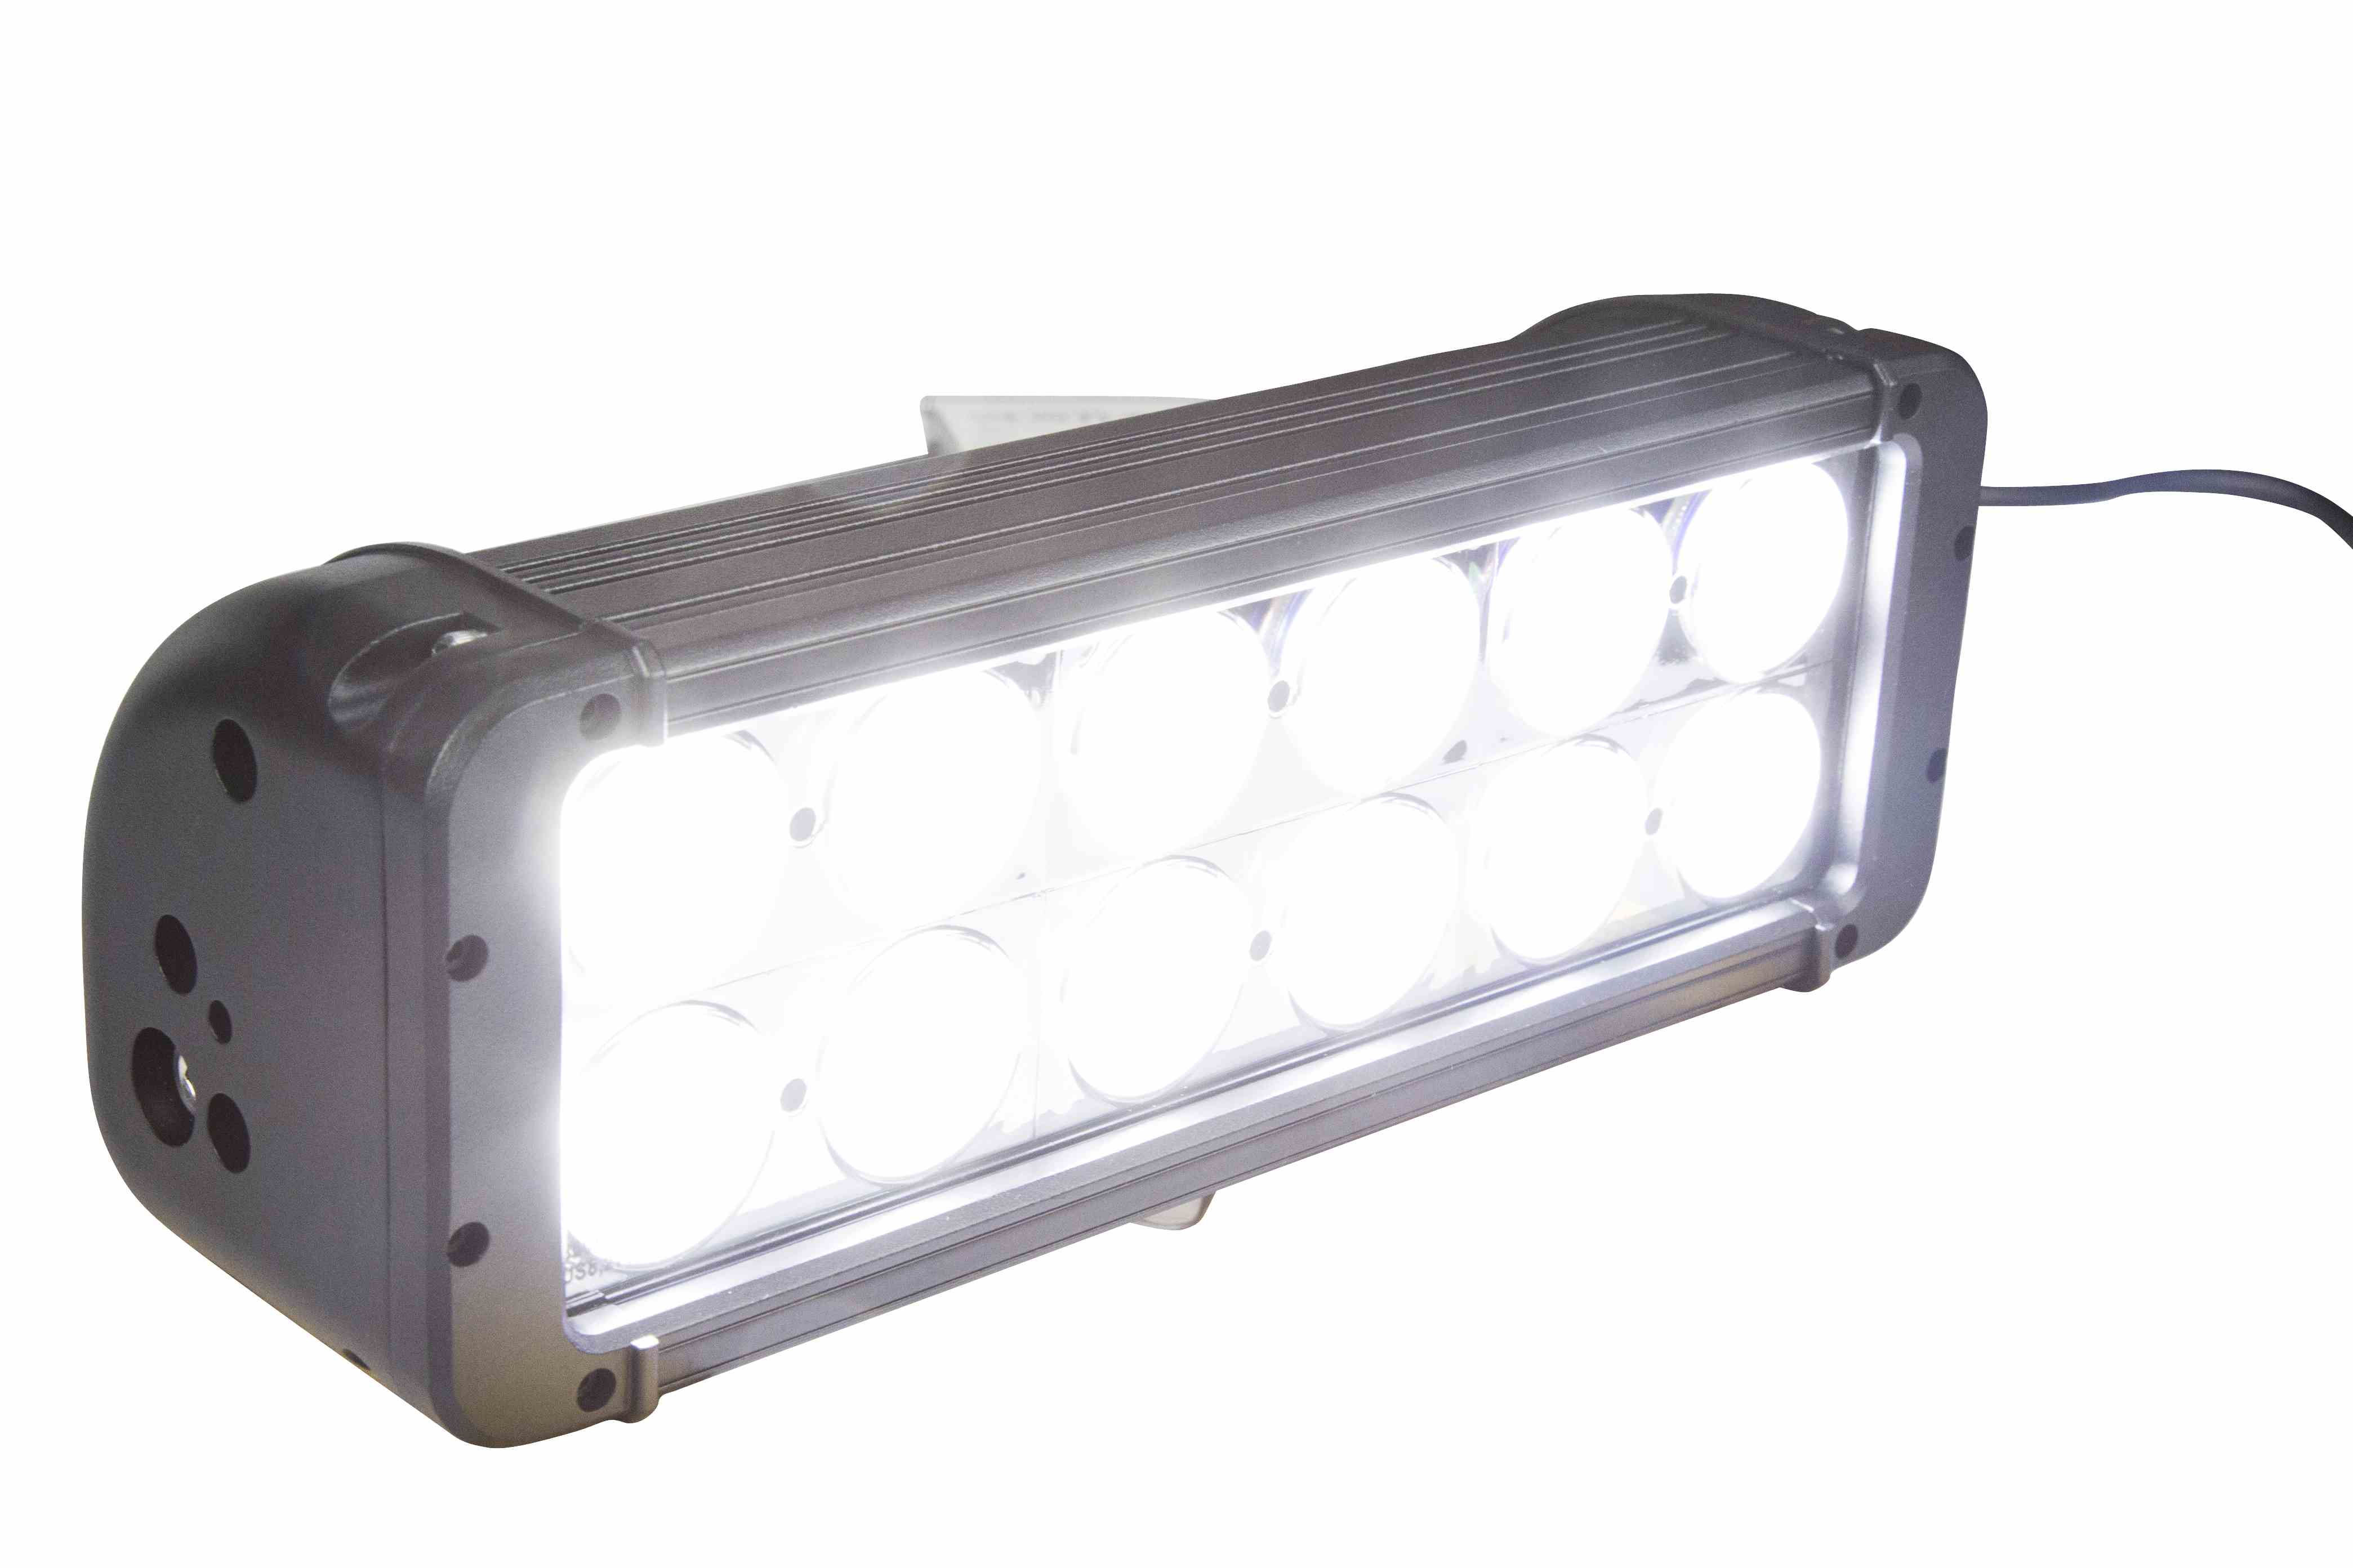 High Intensity Led Boat Light 12 10 Watt Leds 10320 Lumen Wiring Diagram Also Touch Switch As Well Trailer Lights Hi Res Image 7 On